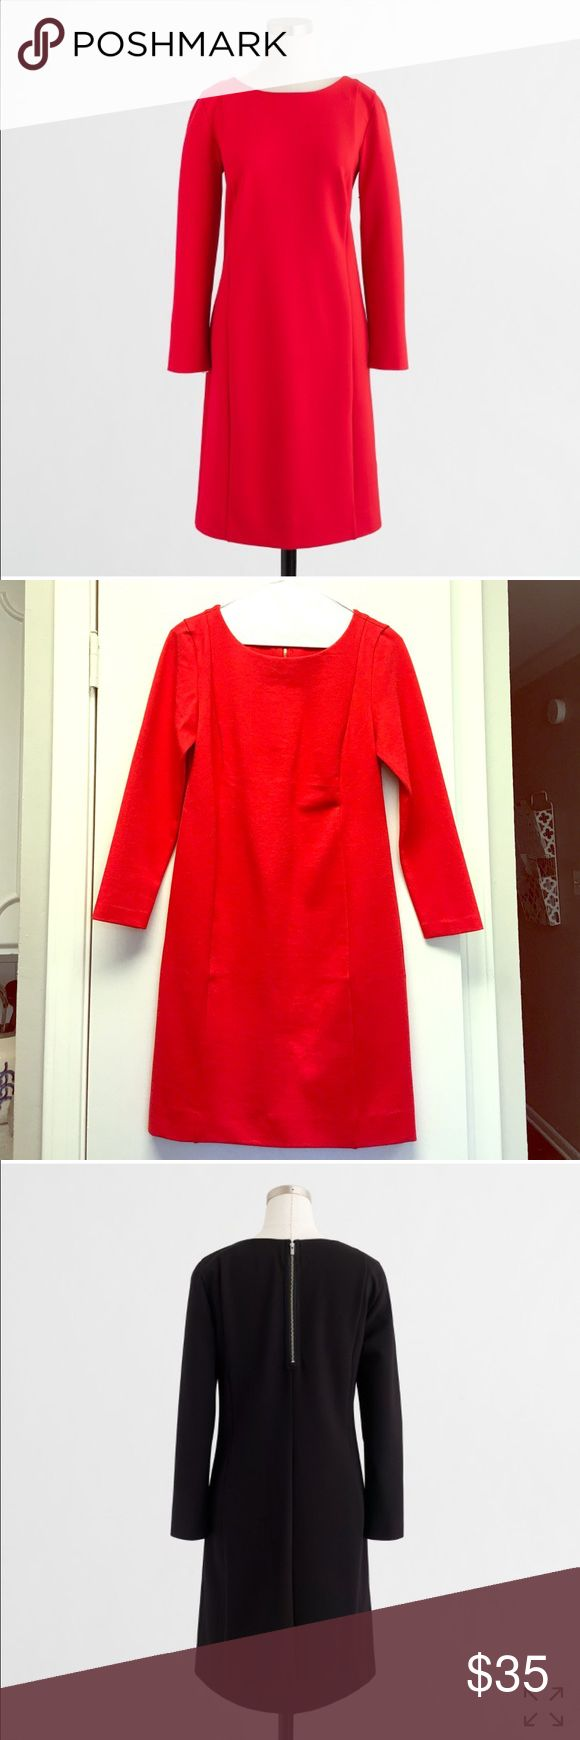 """Jcrew red dress Long-sleeve ponte dress from J. Crew in """"electric red!"""" Such a cute, classic red dress. Just a little big on me. I normally wear an xxs petite and this is a regular xxs. J. Crew Factory Dresses Long Sleeve"""